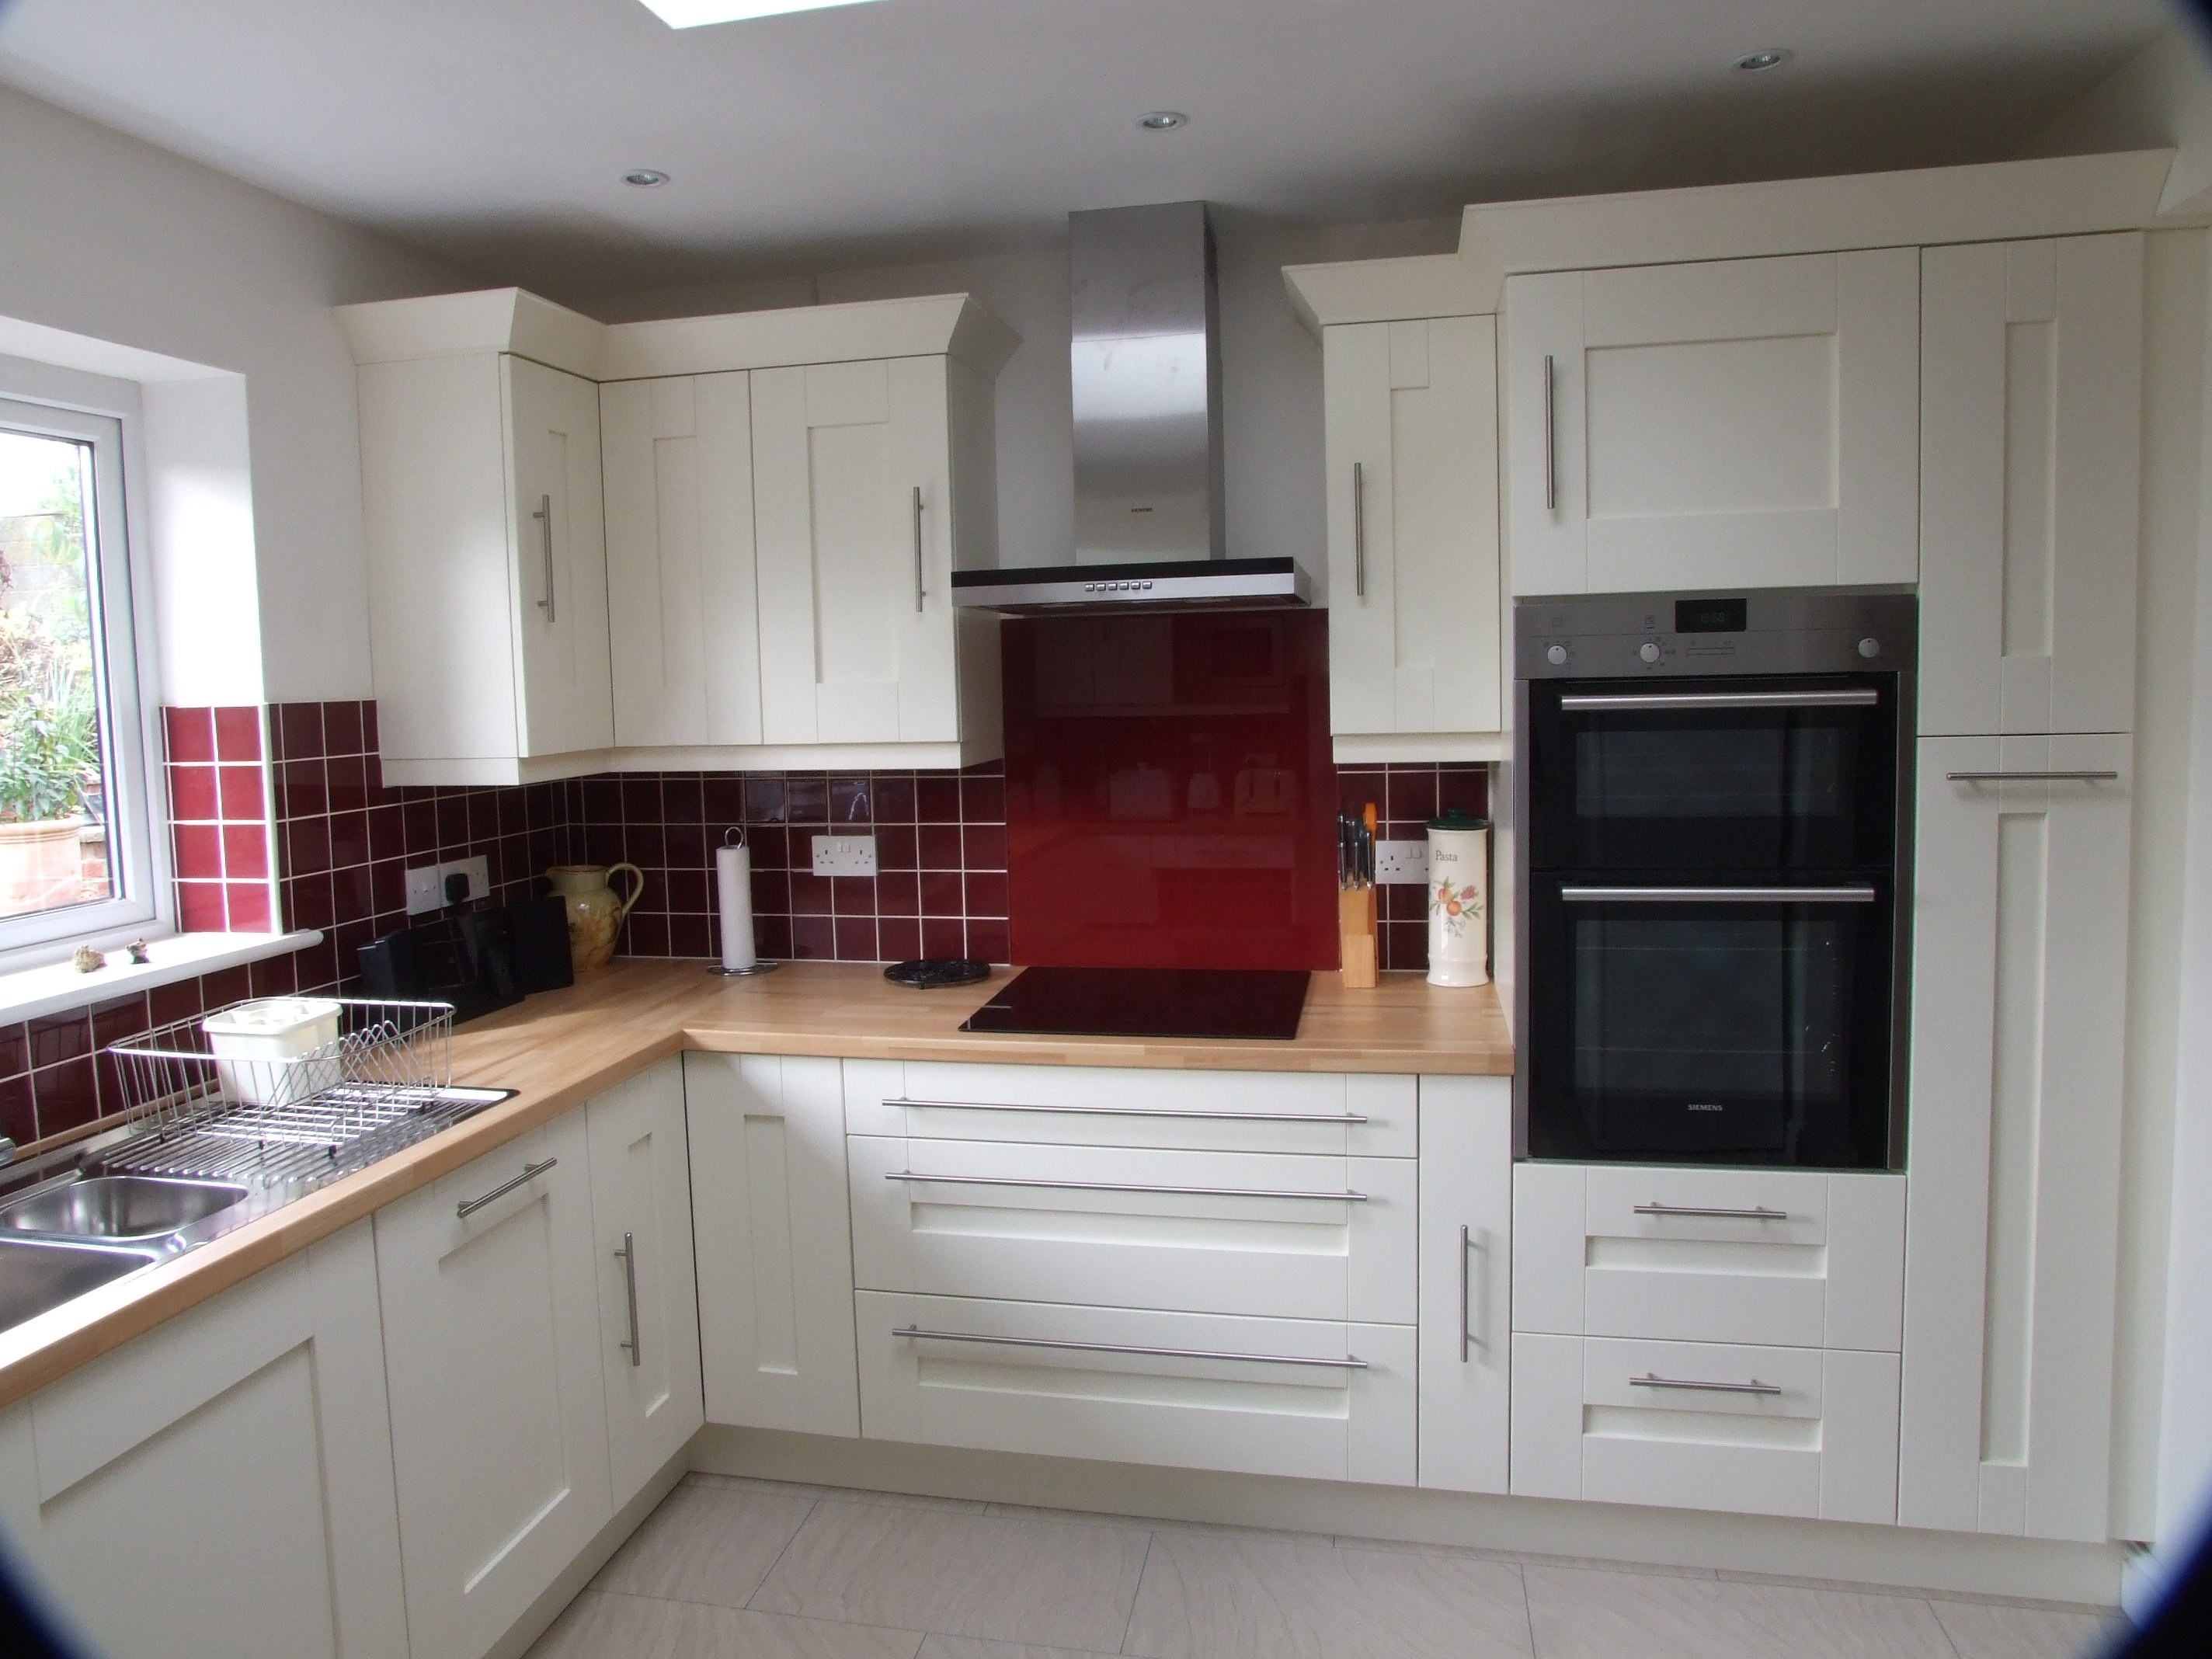 Our Budget Kitchens Consist Of A Vast Selection Of Vinyl Wrap And Laminate  Doors In A Variety Of Finishes. Our Budget Range Is For Customers Who Want  Value ...